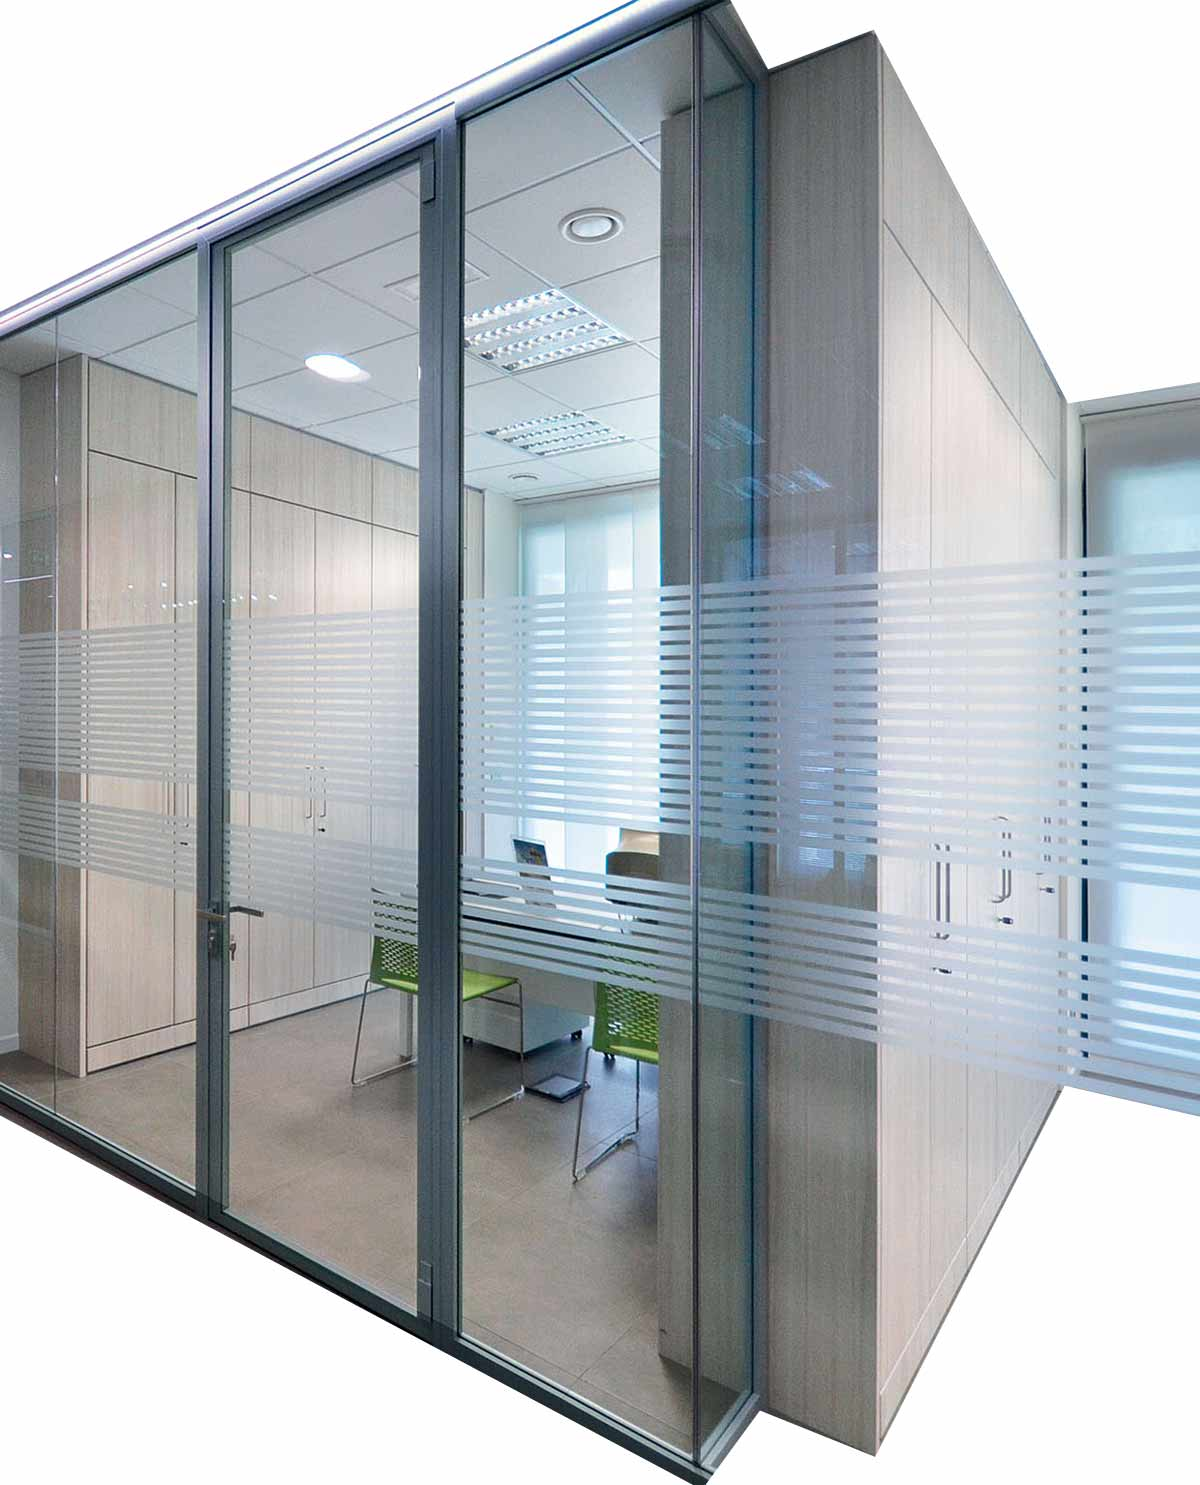 Partition walls equipped with double storage.